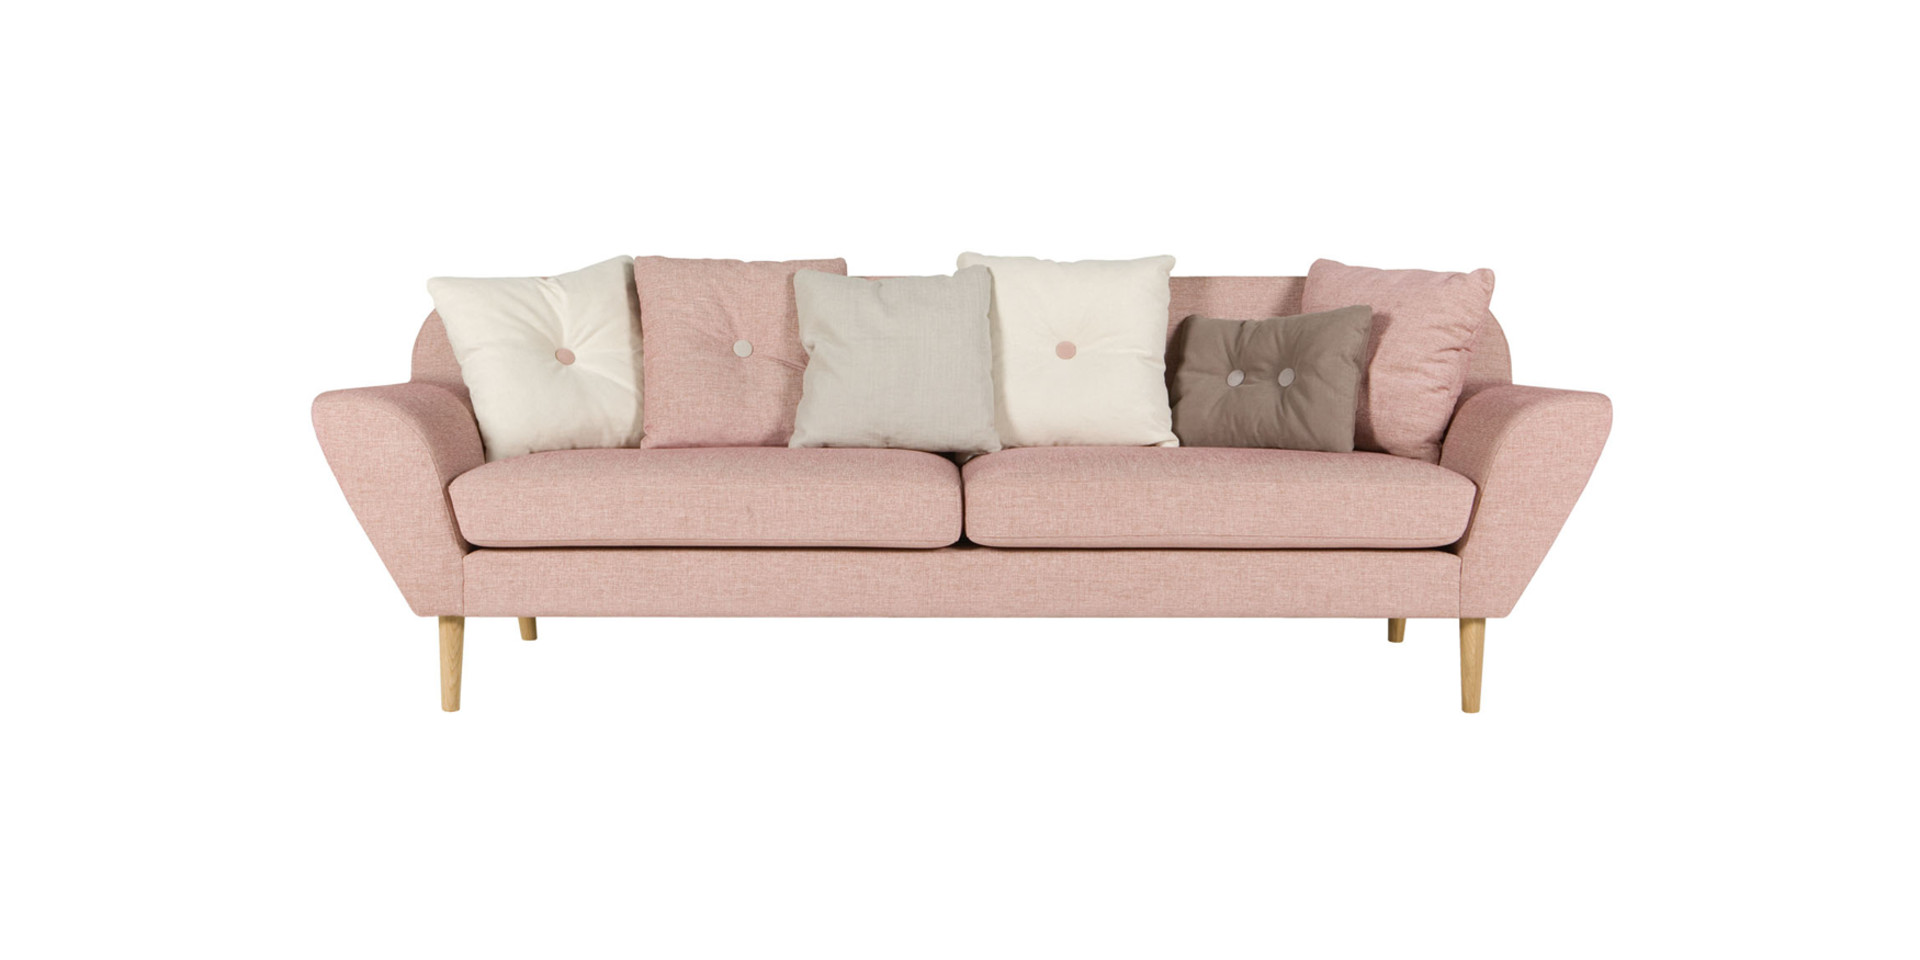 sits-poppy-canape-3seater_divine61_pink_1